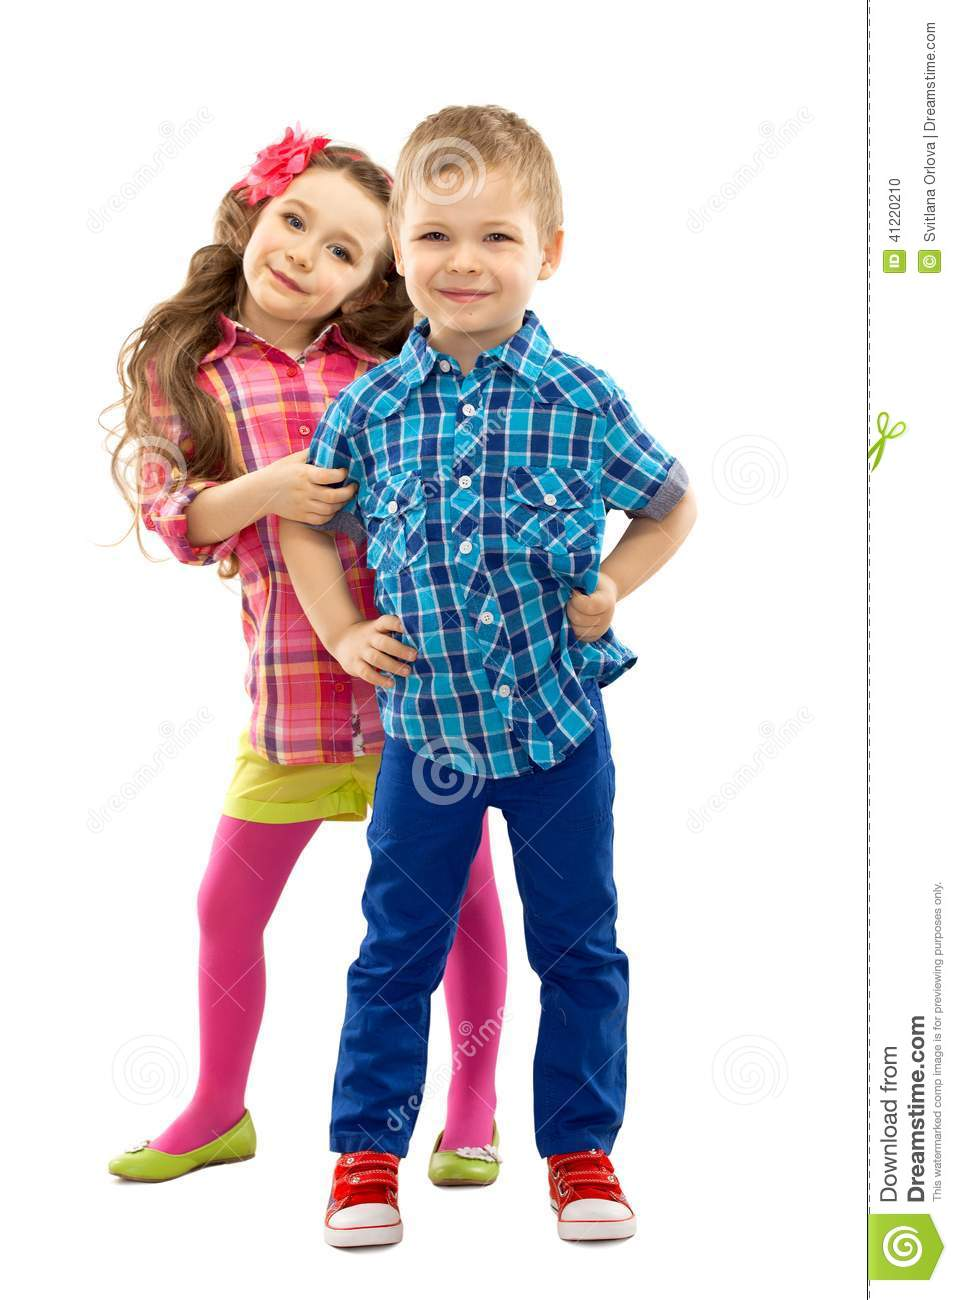 Cute Fashion Kids Are Standing Together Stock Photo ...